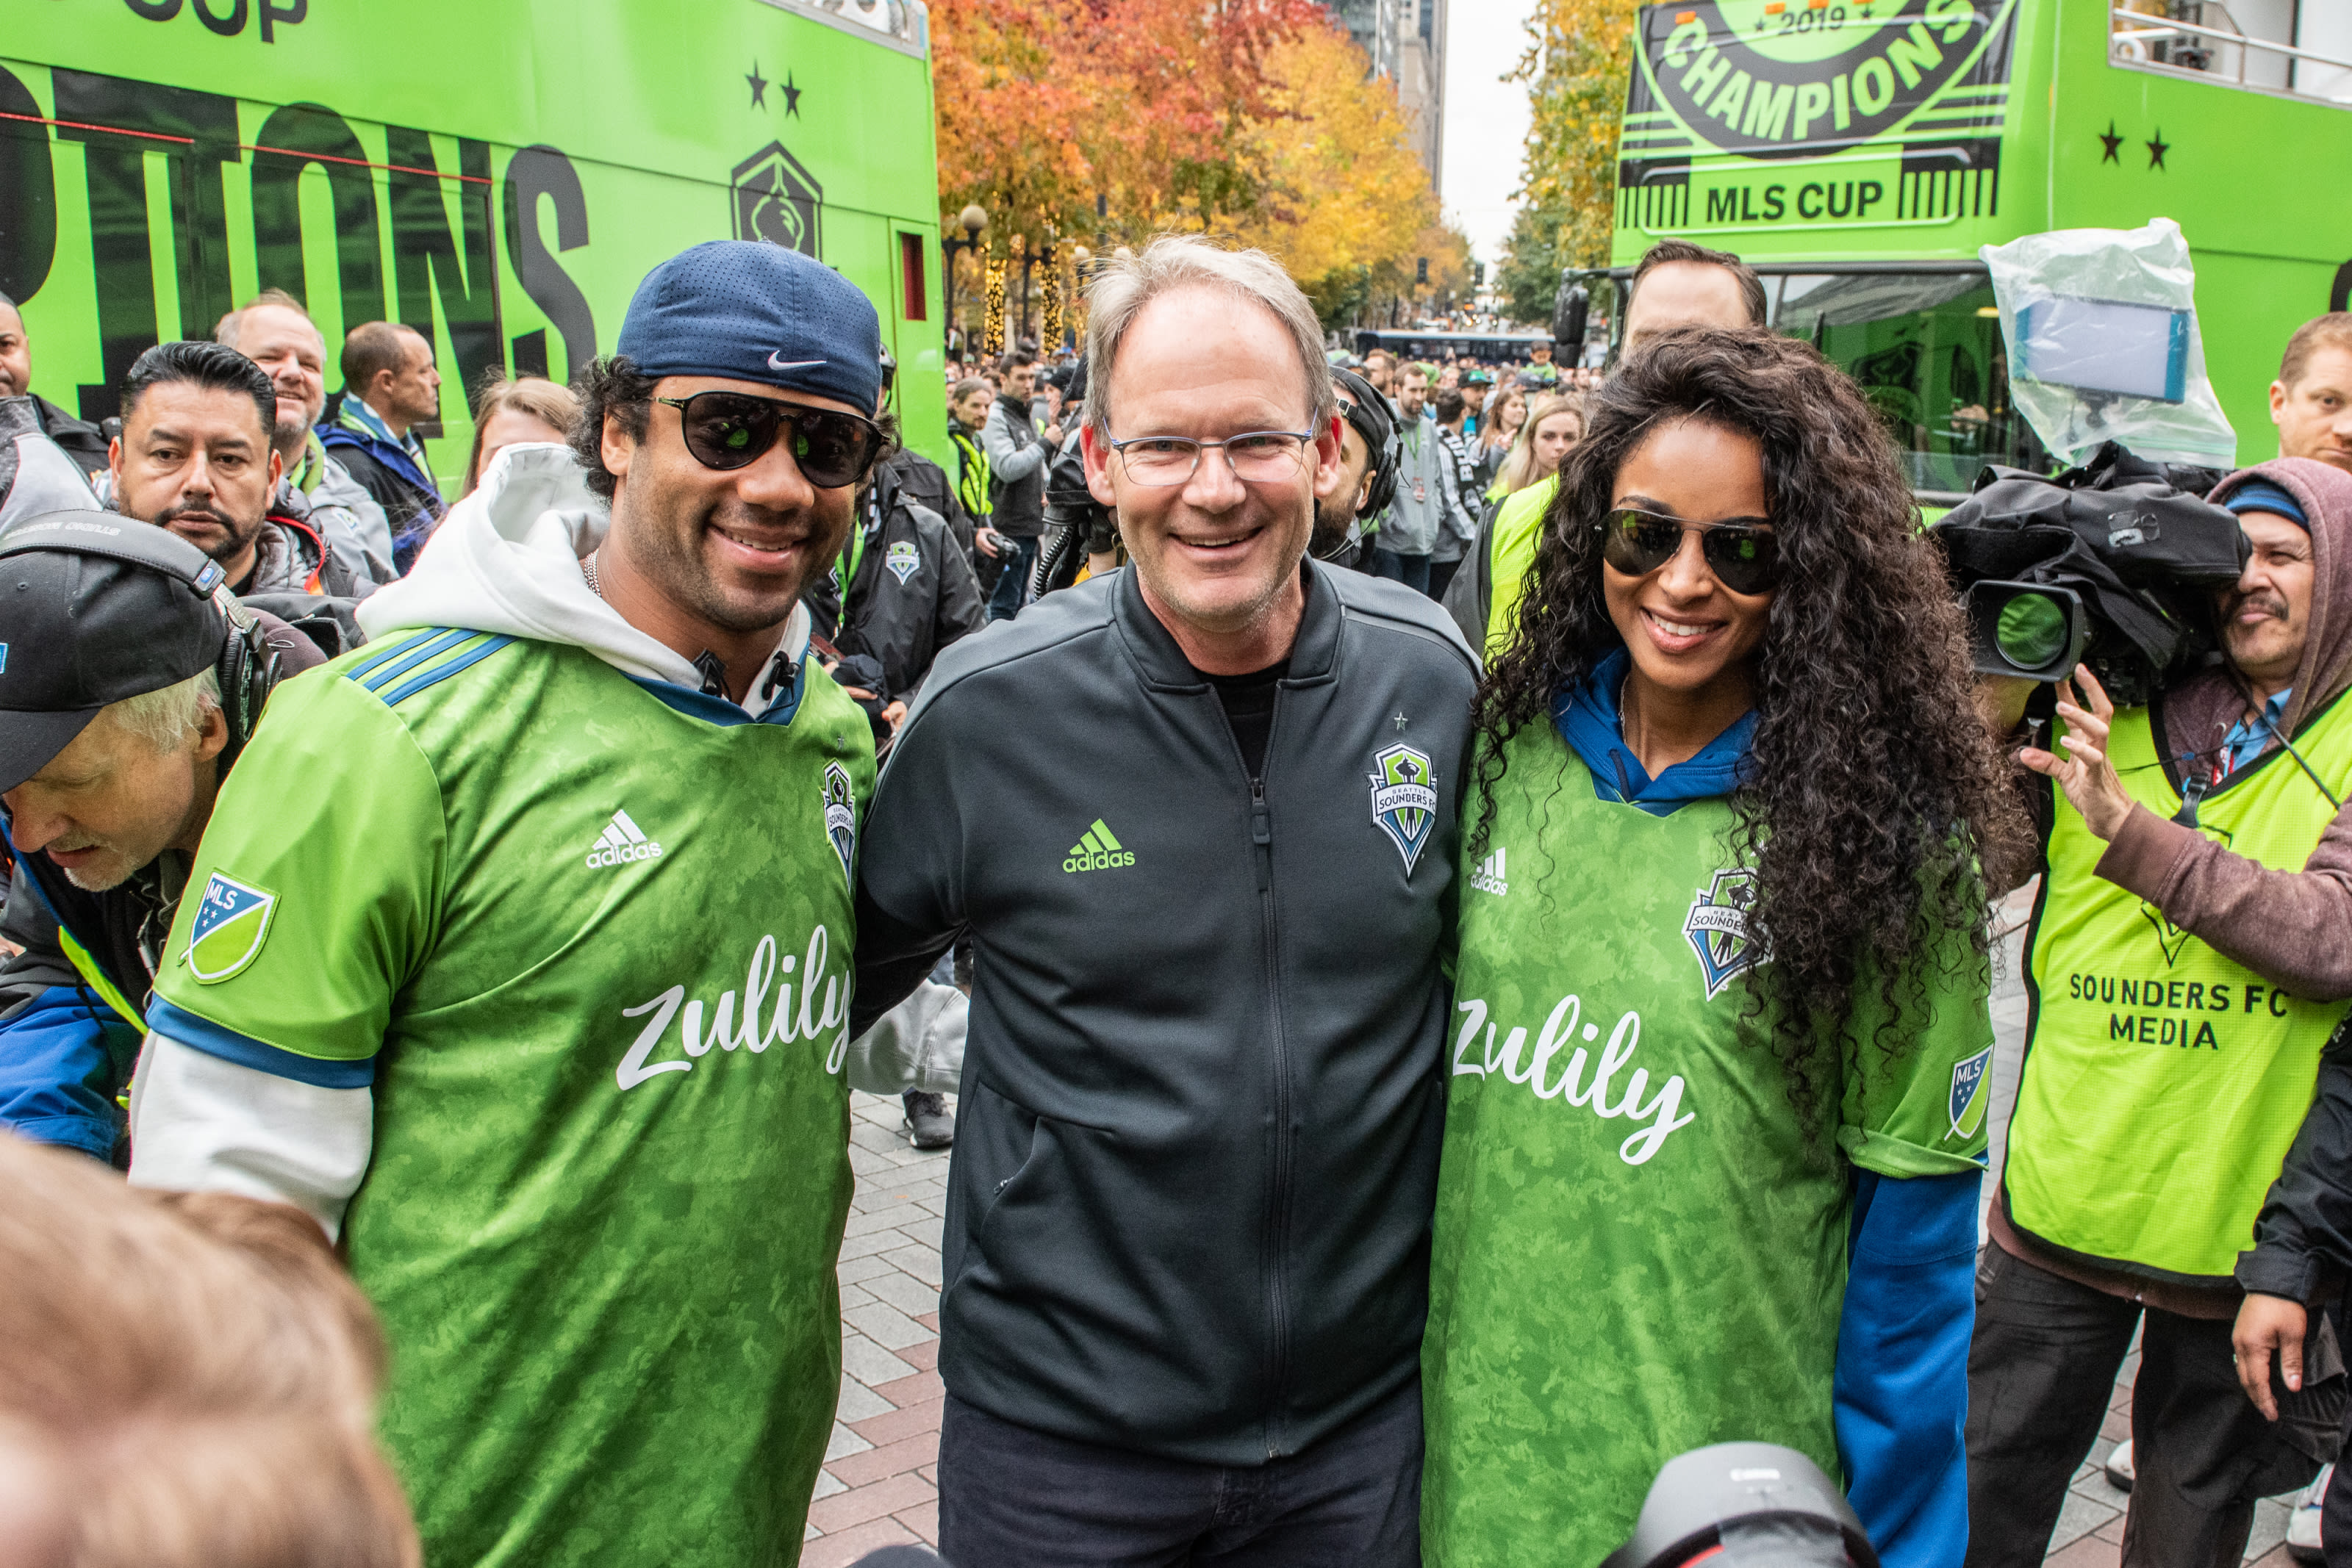 Russell Wilson, Ciara and Brian Schmetzer of the Seattle Sounders celebrate. Ken Griffey Jr. family will join them in 2021.